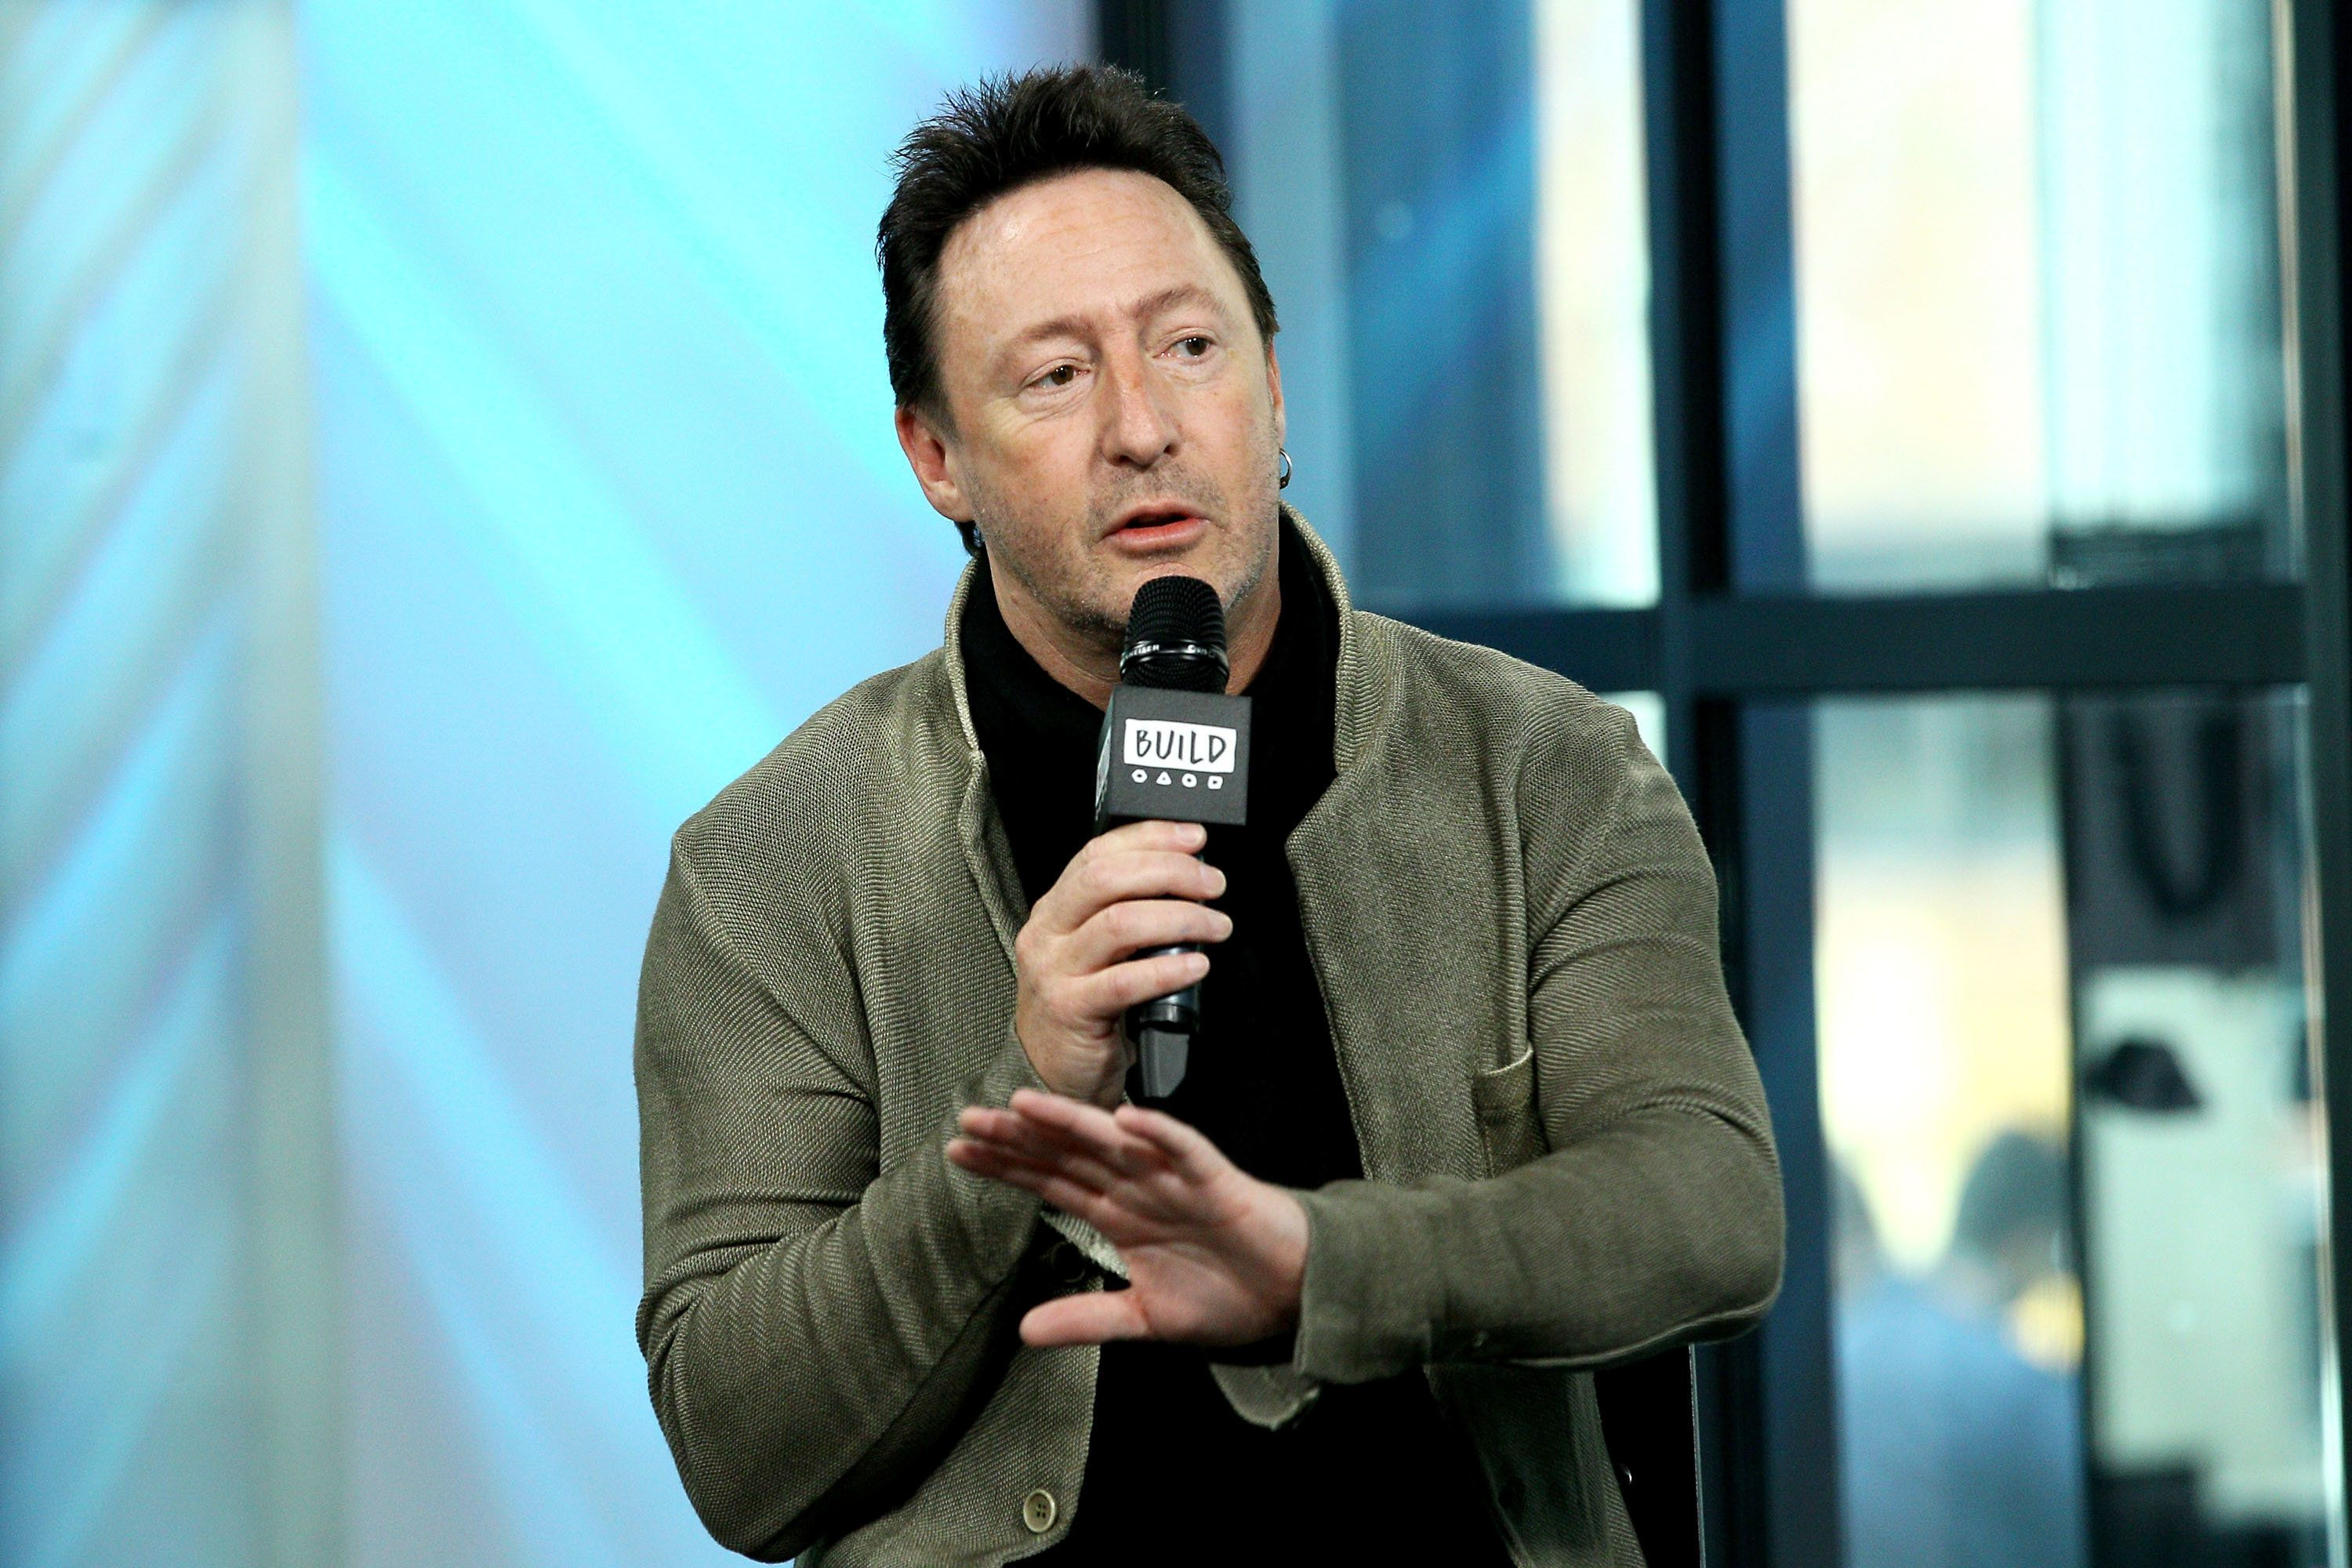 NEW YORK, NY - APRIL 13:  Build Series Presents Julian Lennon Discussing 'Touch the Earth' at Build Studio on April 13, 2017 in New York City.  (Photo by Steve Mack/FilmMagic)